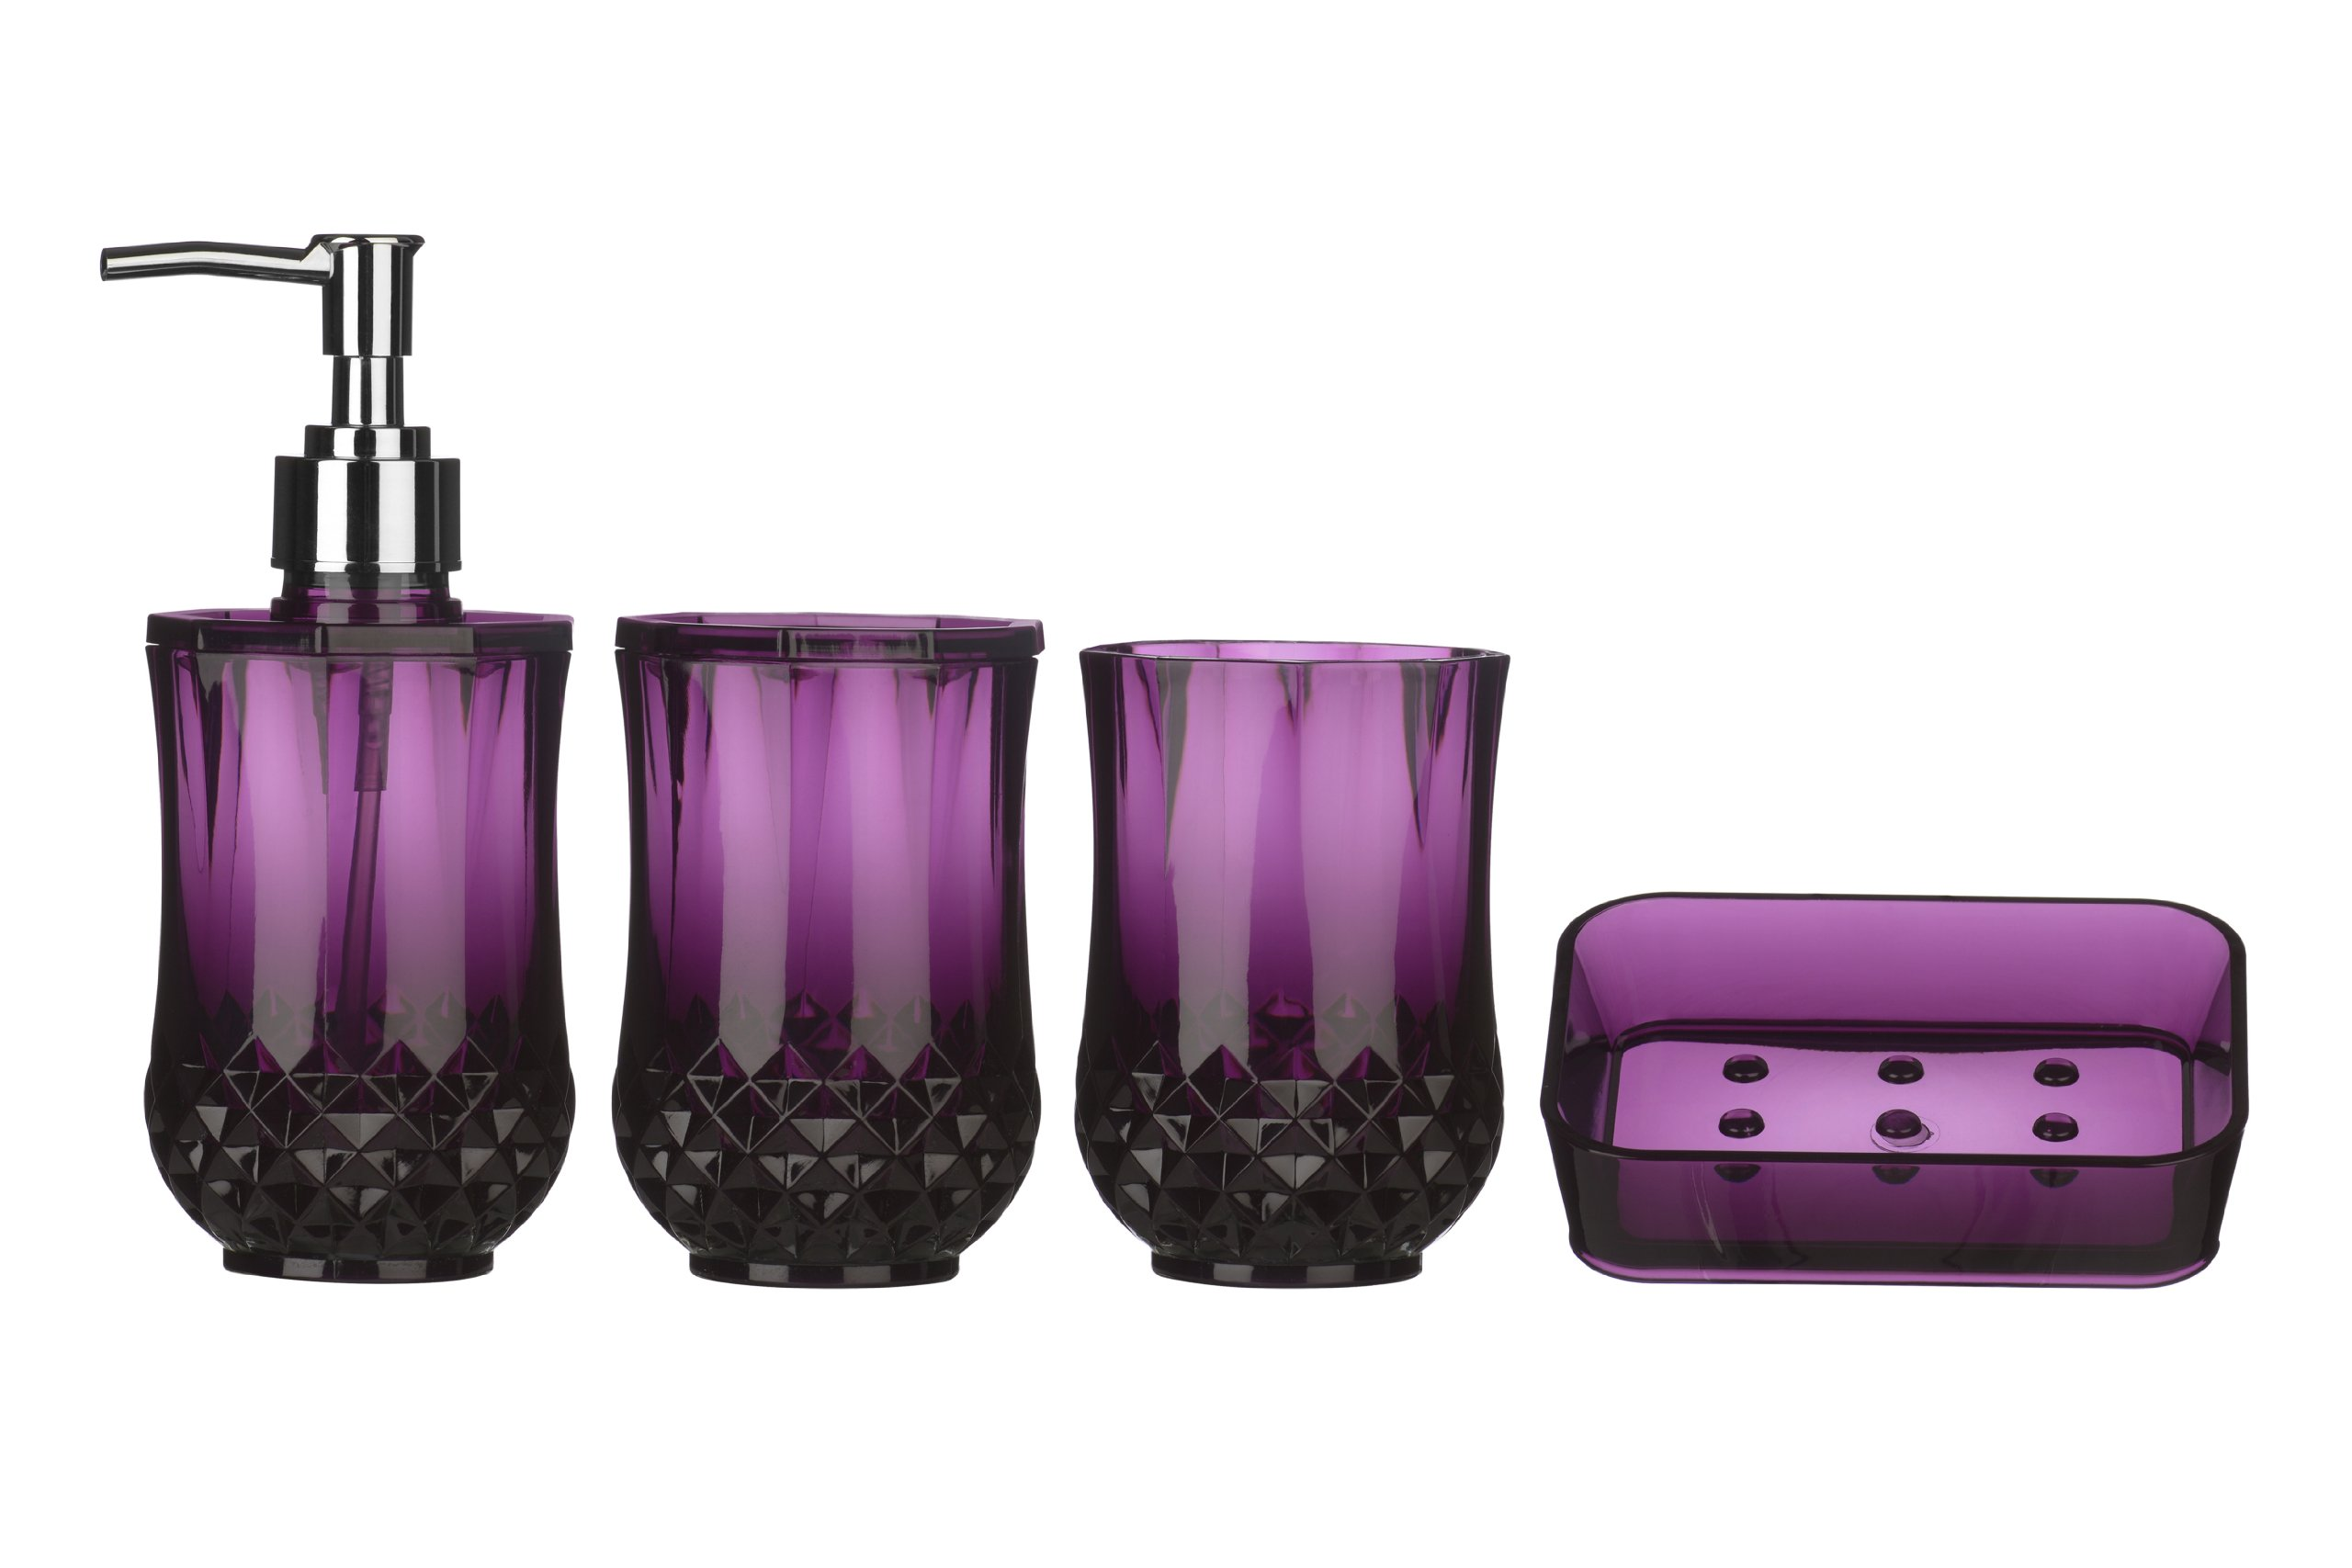 Premier Housewares Cristallo Bathroom Set, 4 Pieces   Purple